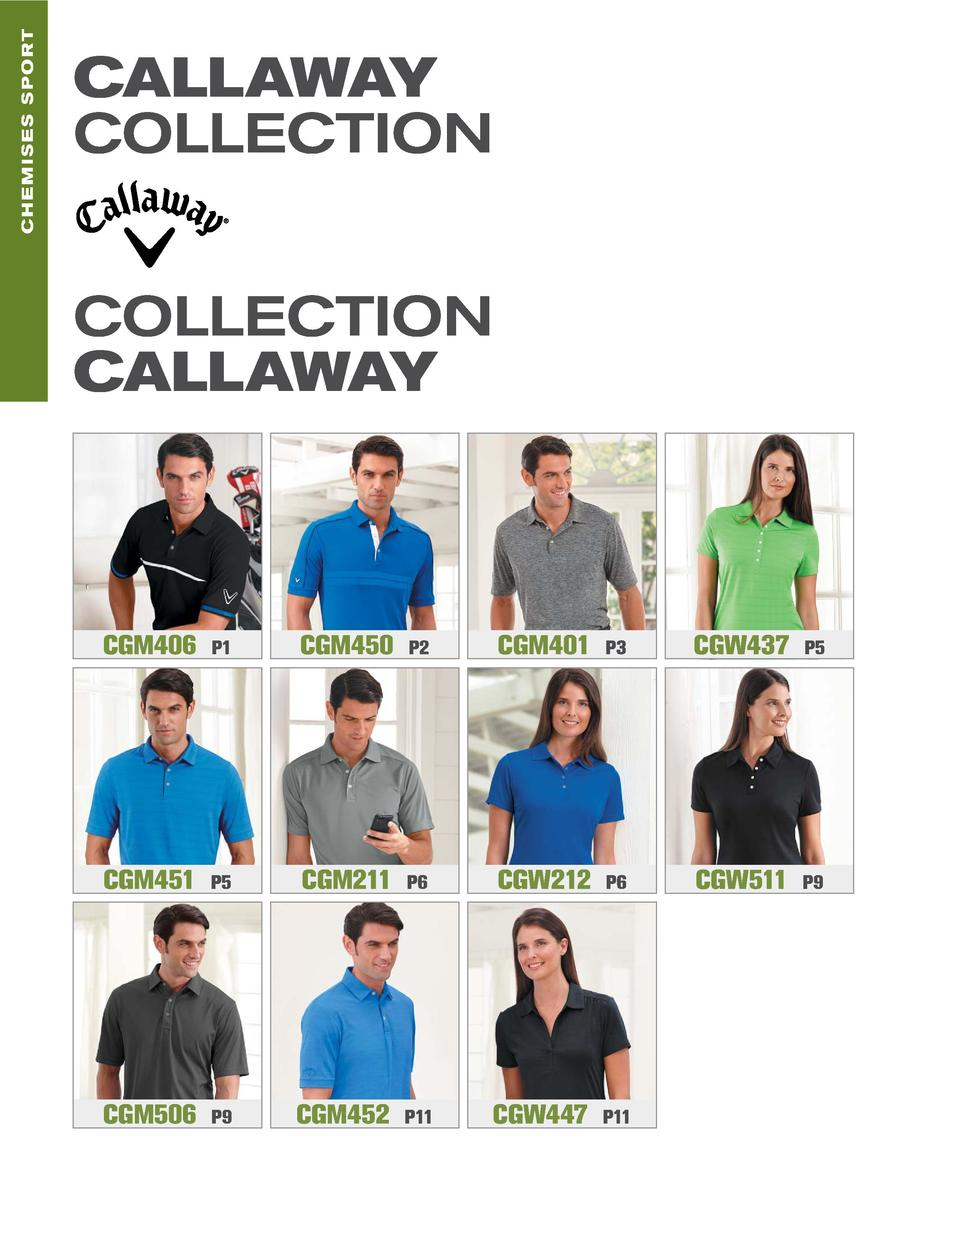 CHEMISES sport  callaway collection collection callaway  CGM406  P1  CGM450  P2  CGM401  P3  CGW437  P5  CGM451  P5  CGM21...